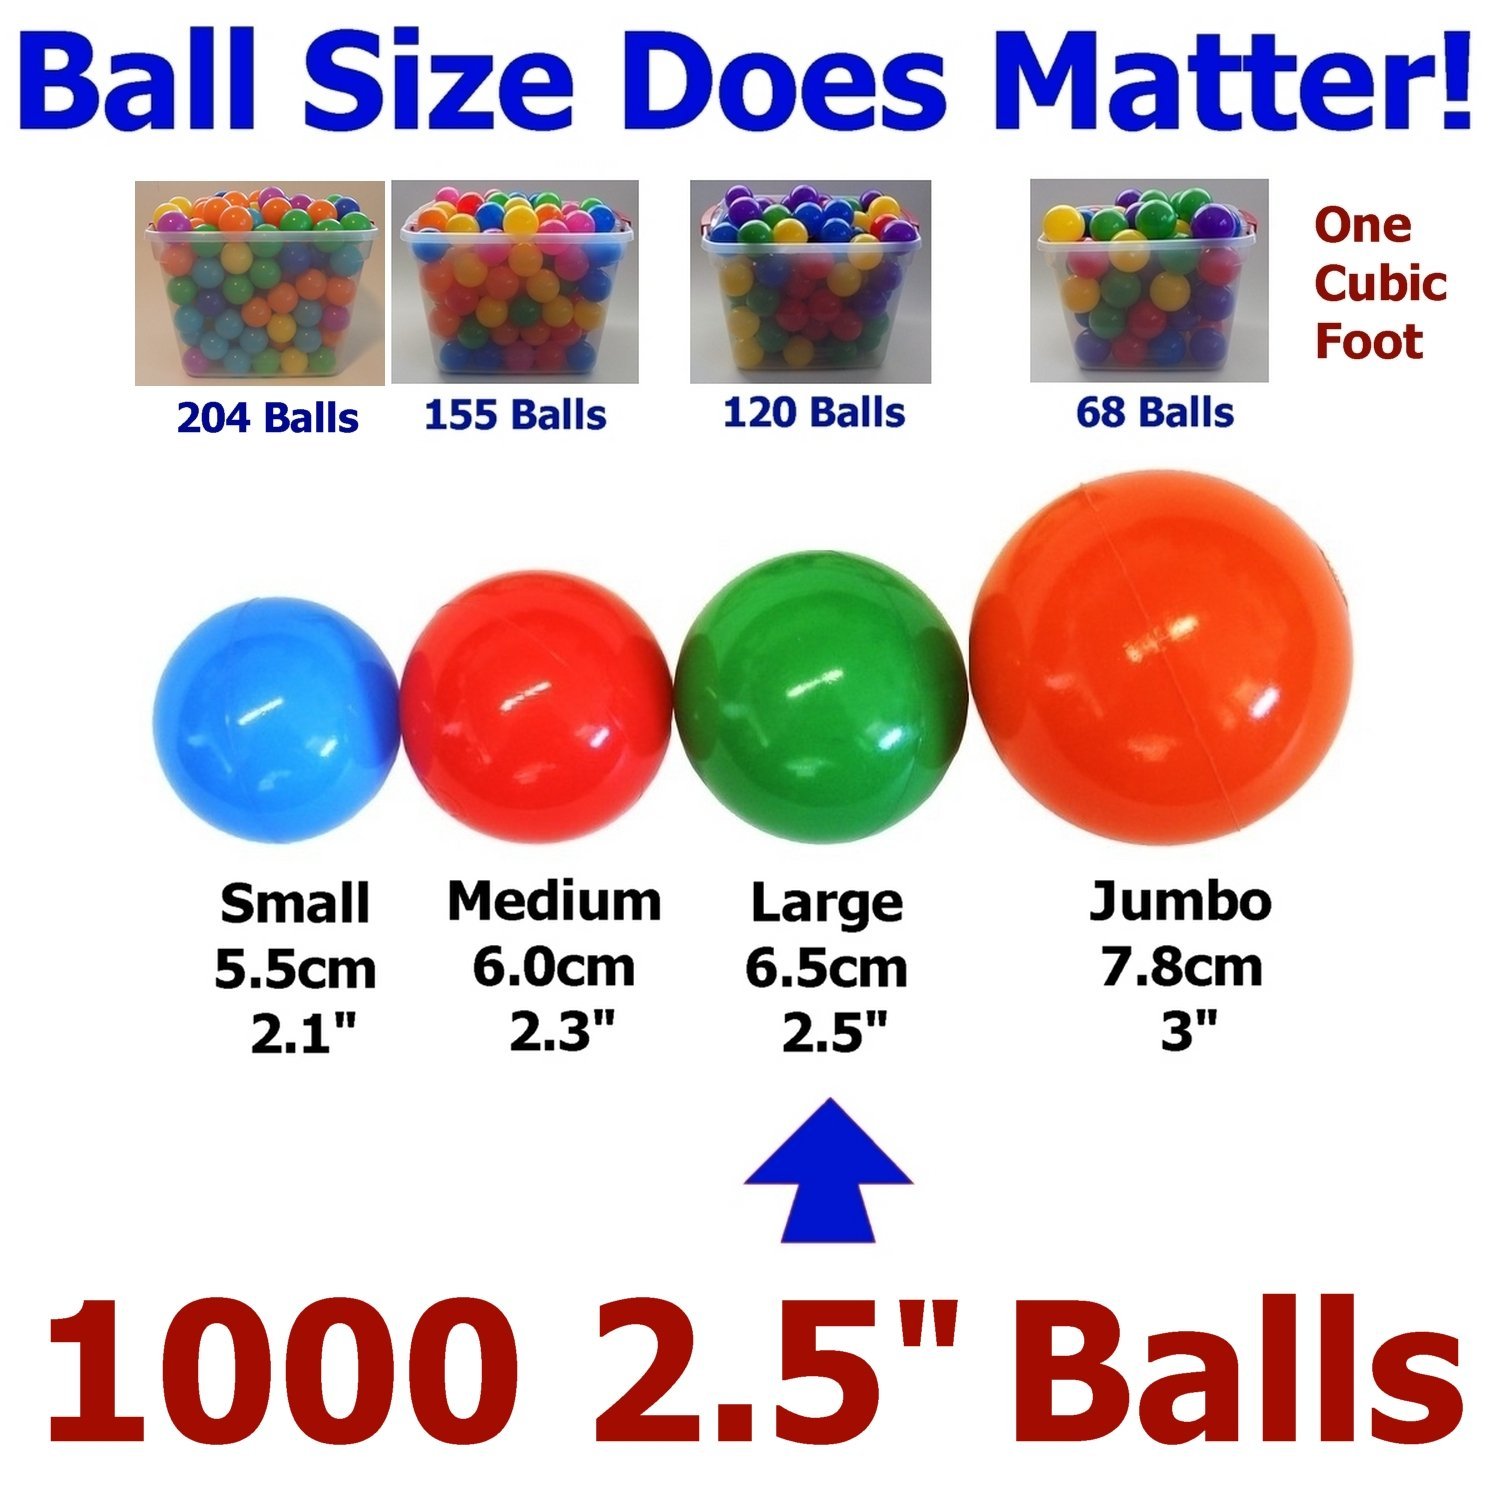 My Balls Pack of 1000 pcs 2.5'' True to Size Balls Phthalate Free BPA Free Crush Proof Plastic Balls in 5 Bright Colors by My Balls (Image #2)